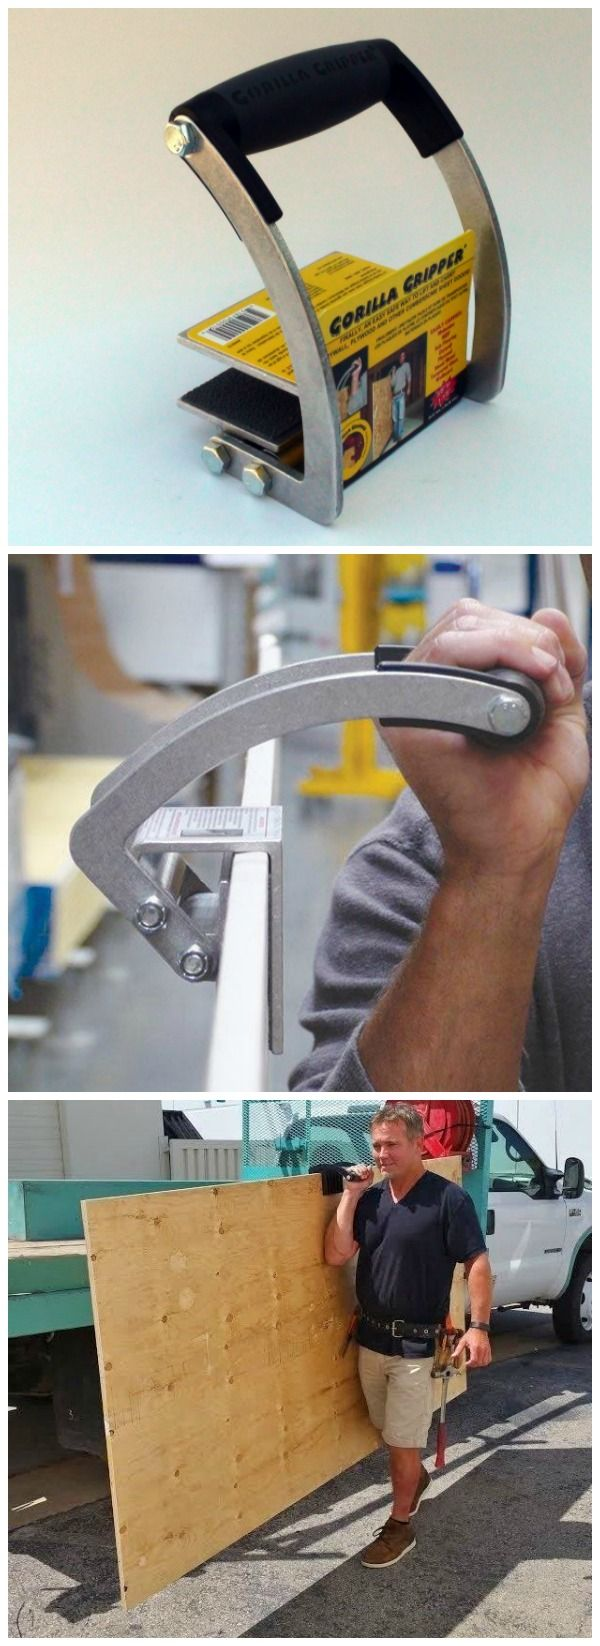 The Gorilla Gripper Is The Panel Carrier That Makes